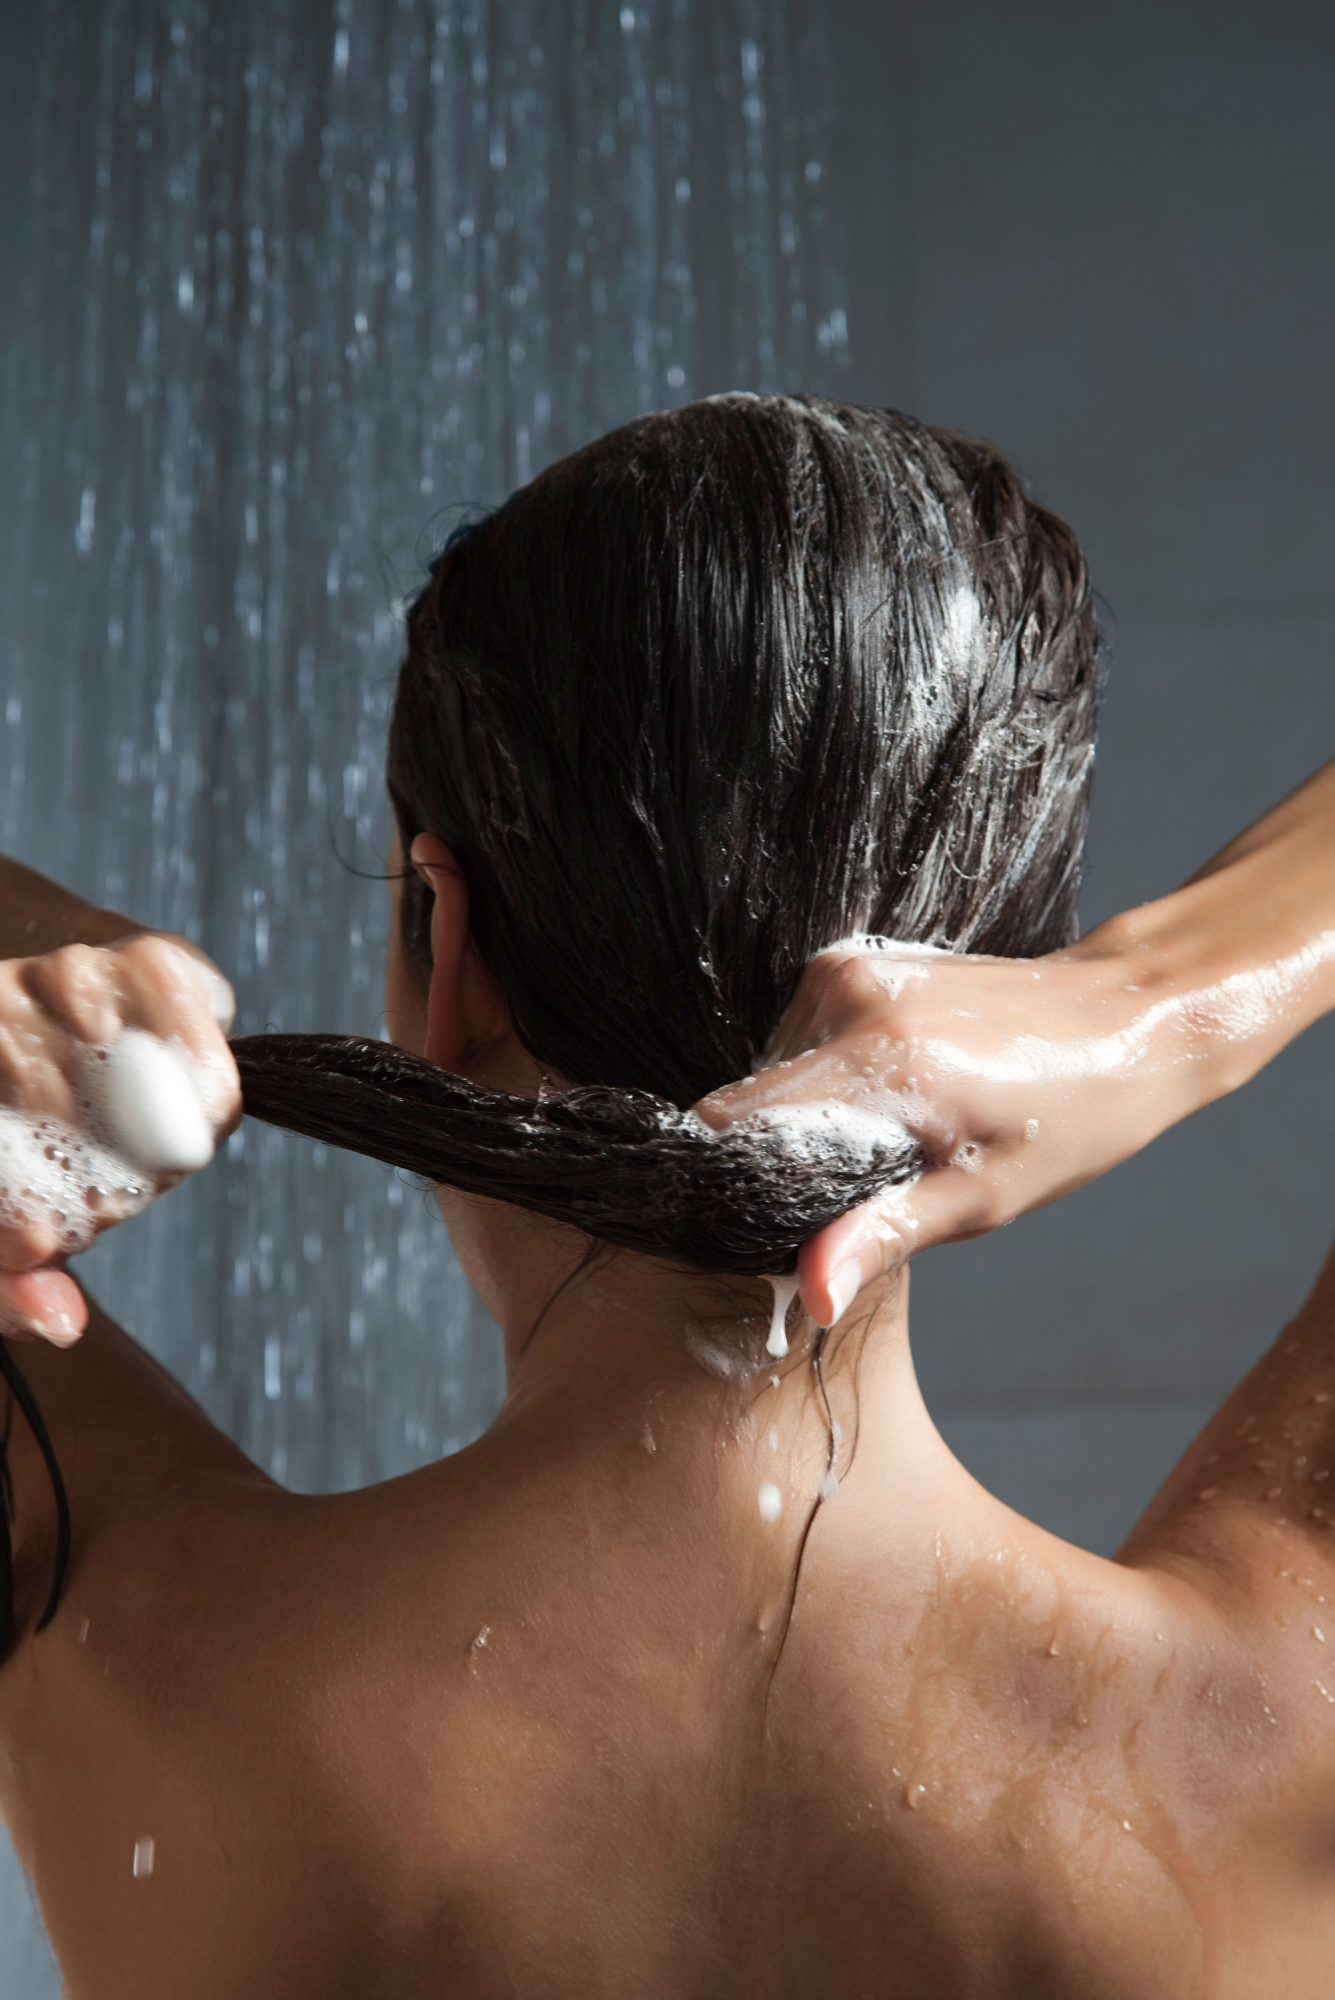 How Often Do You Really Need to Shower? Dermatologists Reveal the Truth